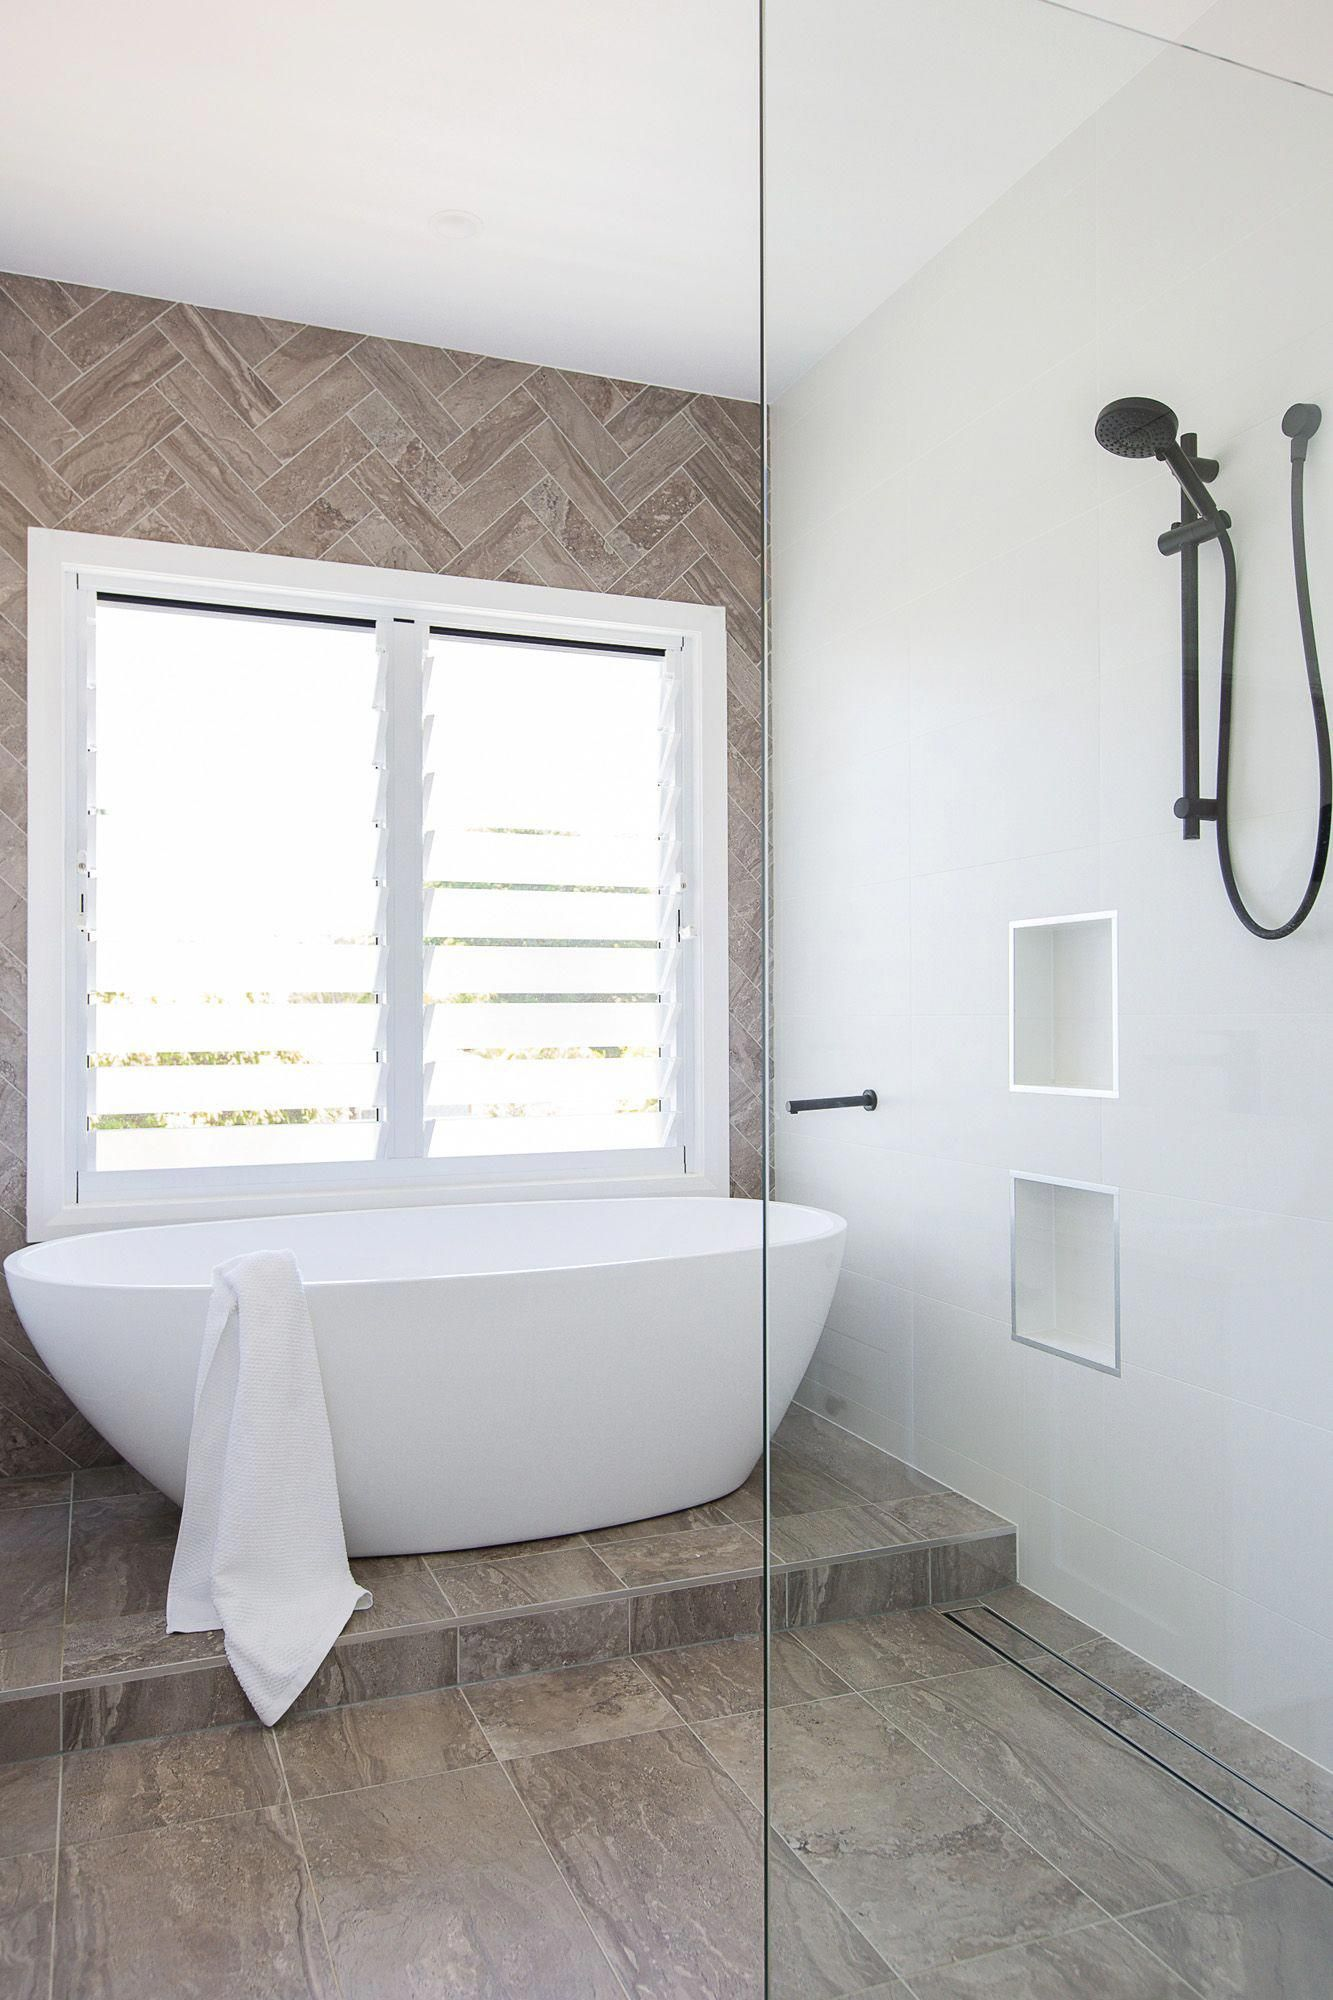 How Much Does A Kitchen Remodel Cost Room Renovation Bathroom Renovations Bath Under Window